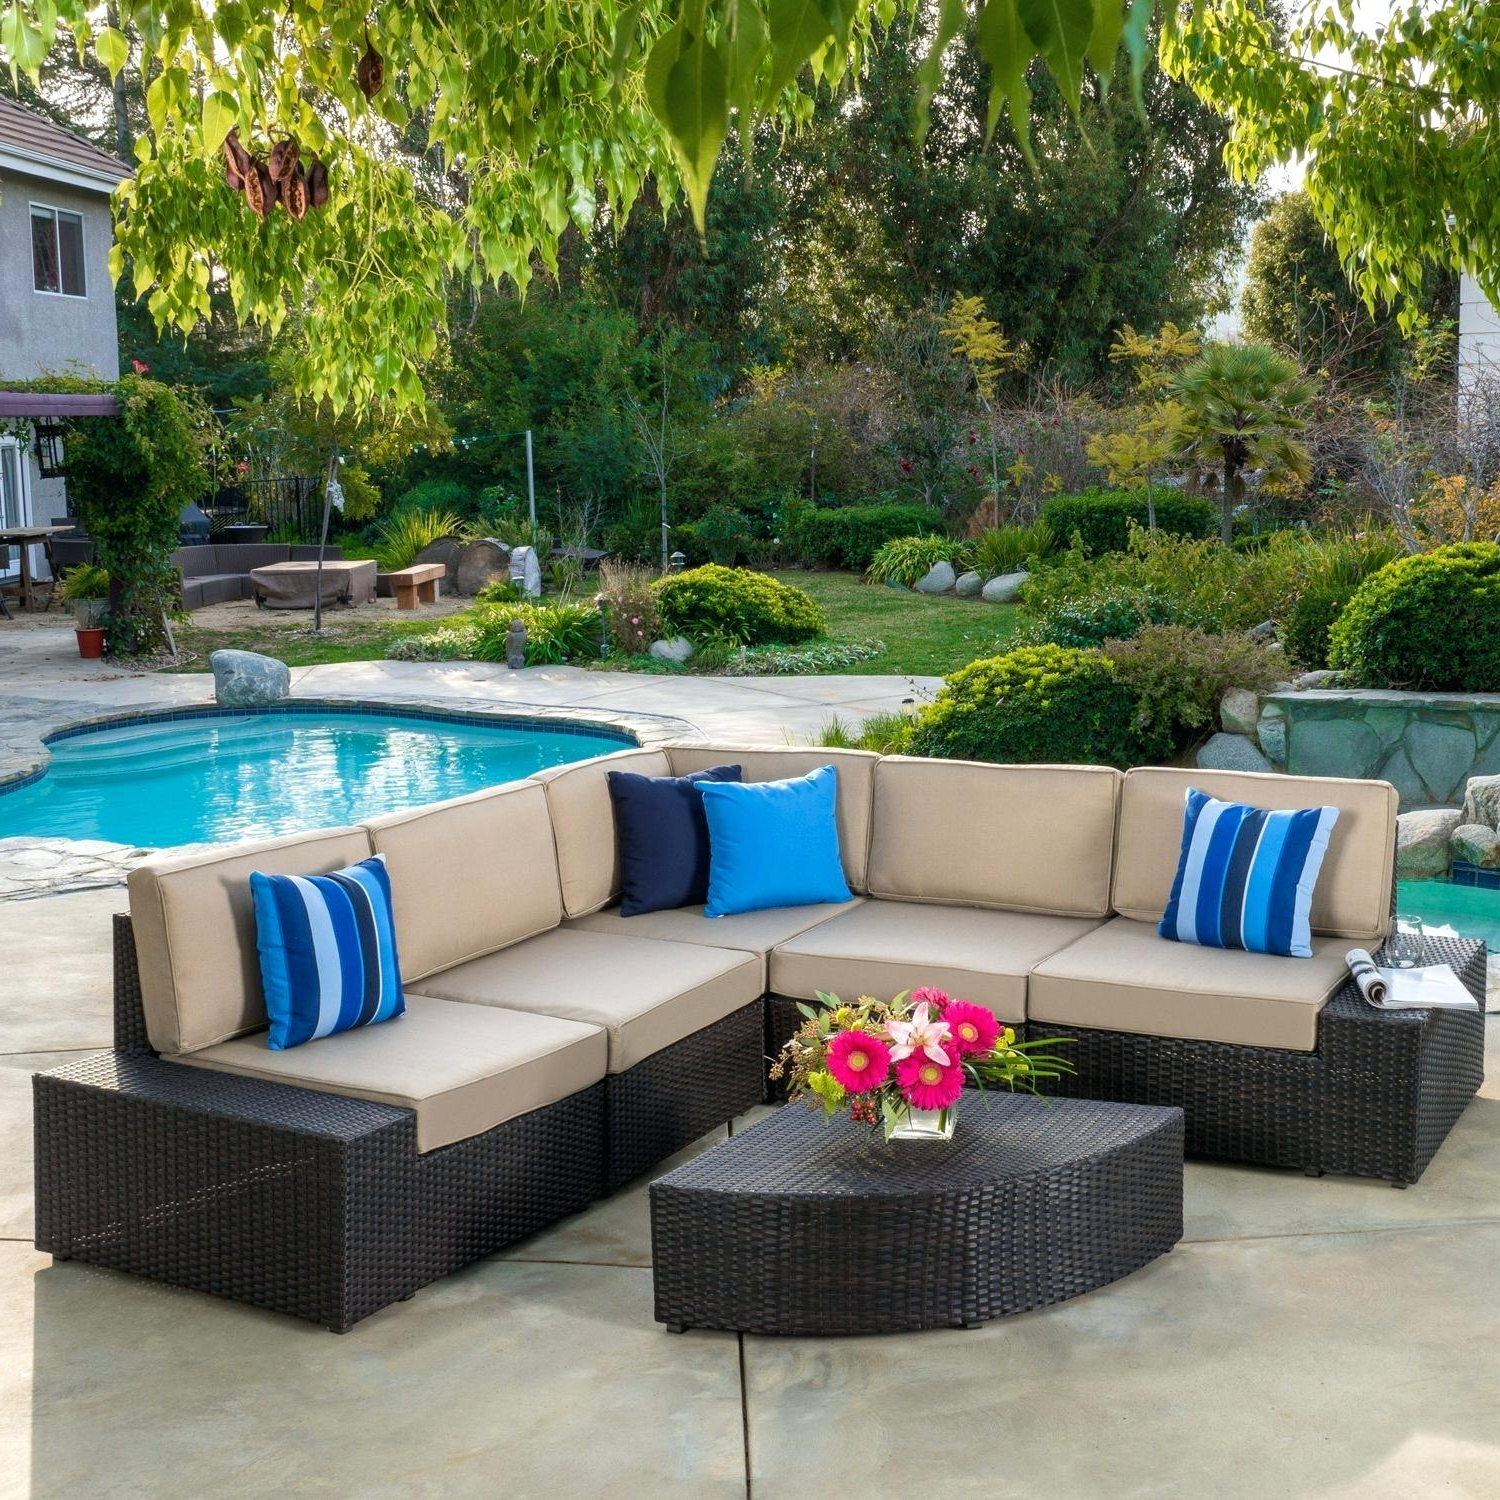 Ostrowski Patio Sectionals With Cushions In Preferred Wicker Patio Sectional – Redsparrowmovie (View 5 of 25)